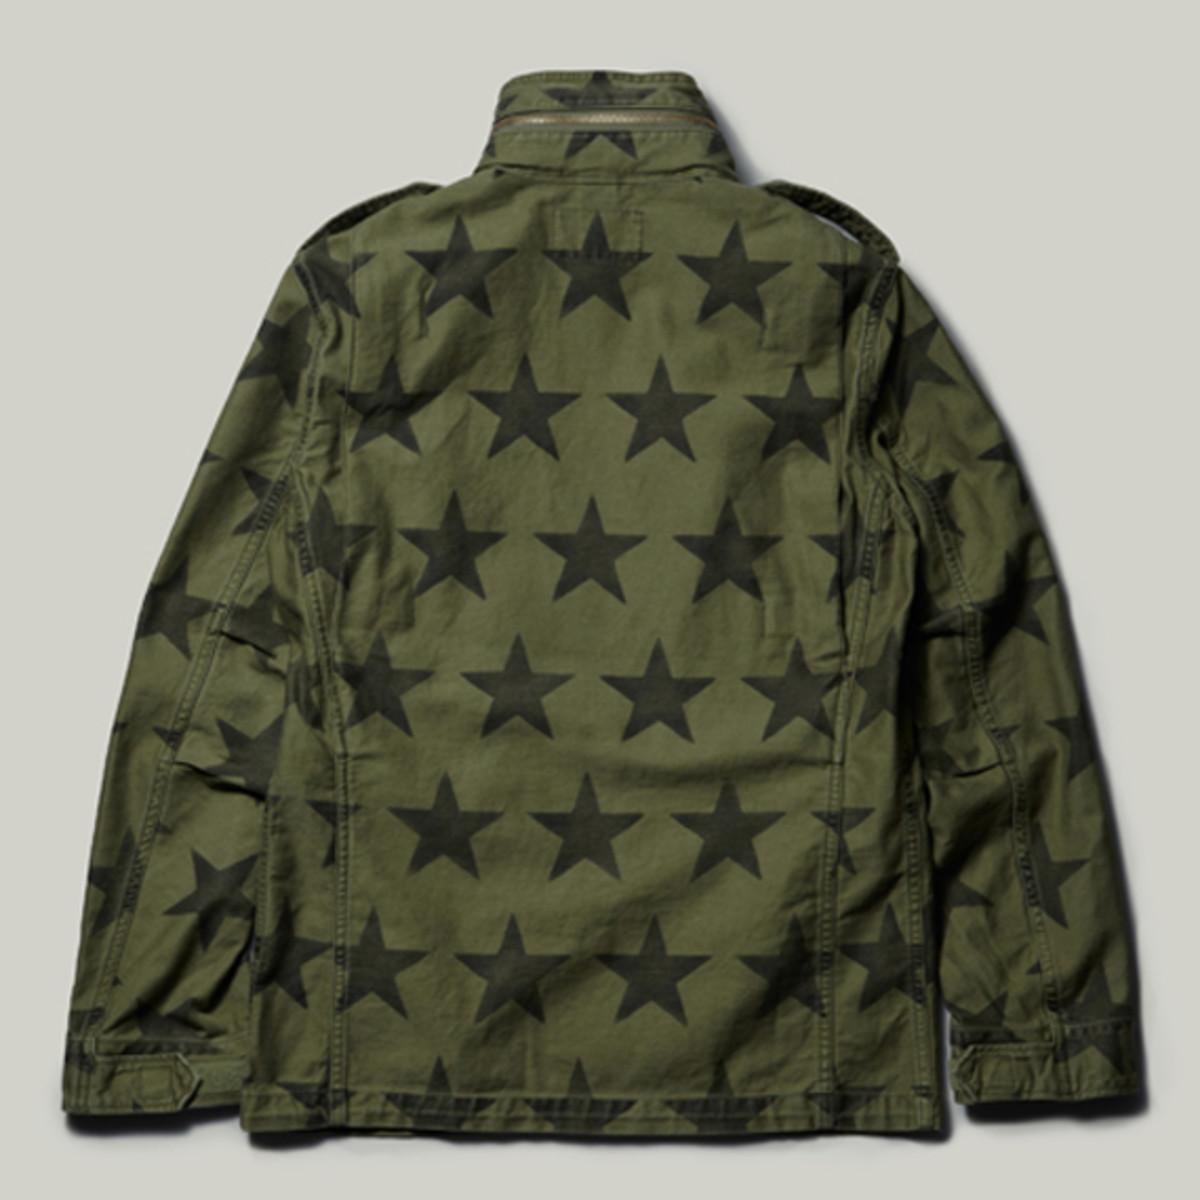 wacko-maria-star-m-65-jacket-02